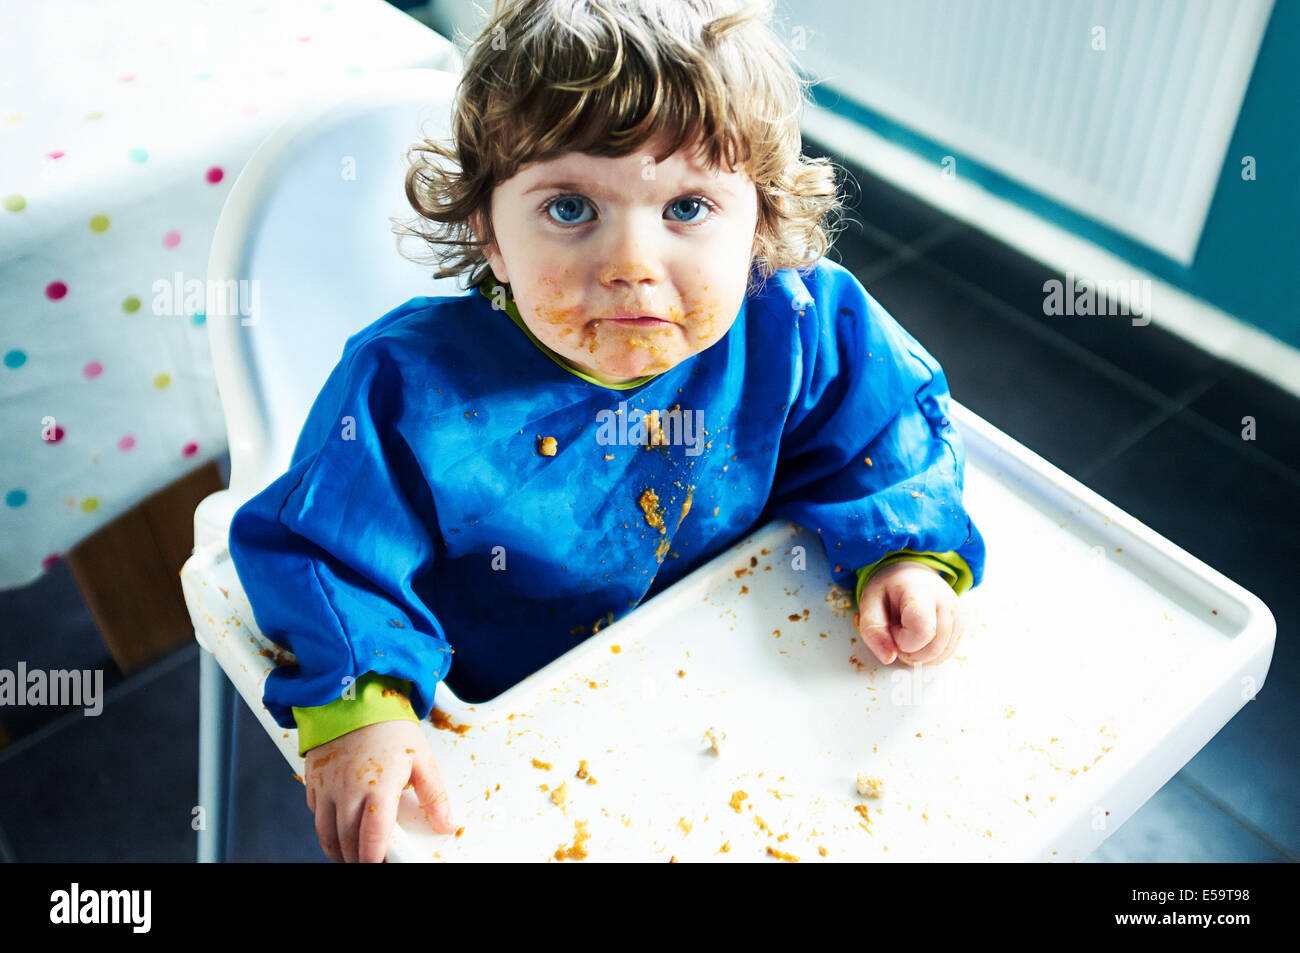 Messy baby girl eating in high chair - Stock Image